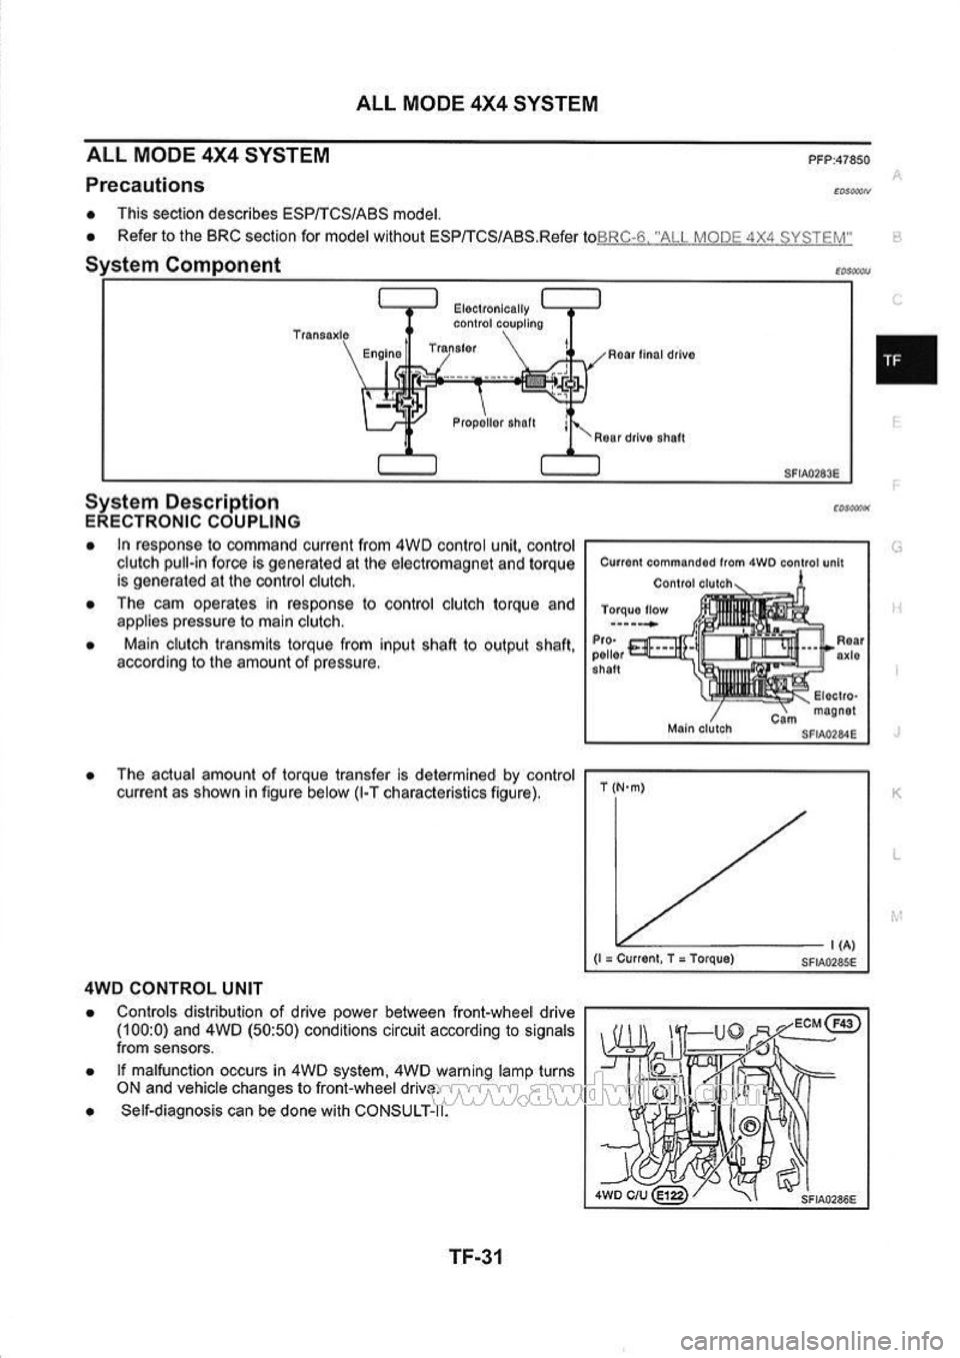 DACIA DUSTER 2010 1.G 4WD System Manual, Page 2